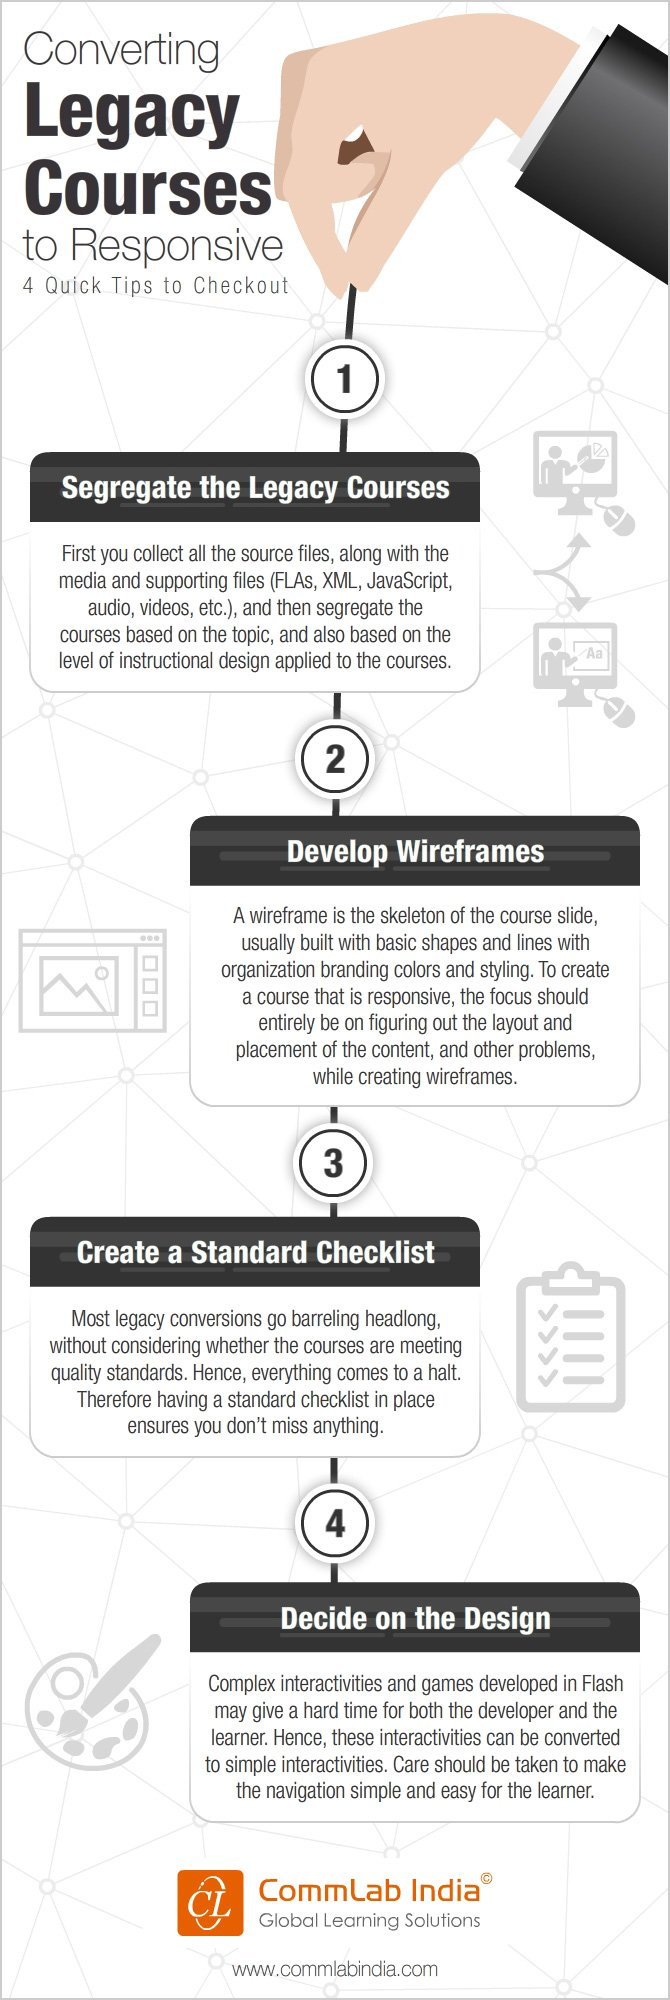 Converting Legacy Courses to Responsive - 4 Quick Tips to Check [Infographic]